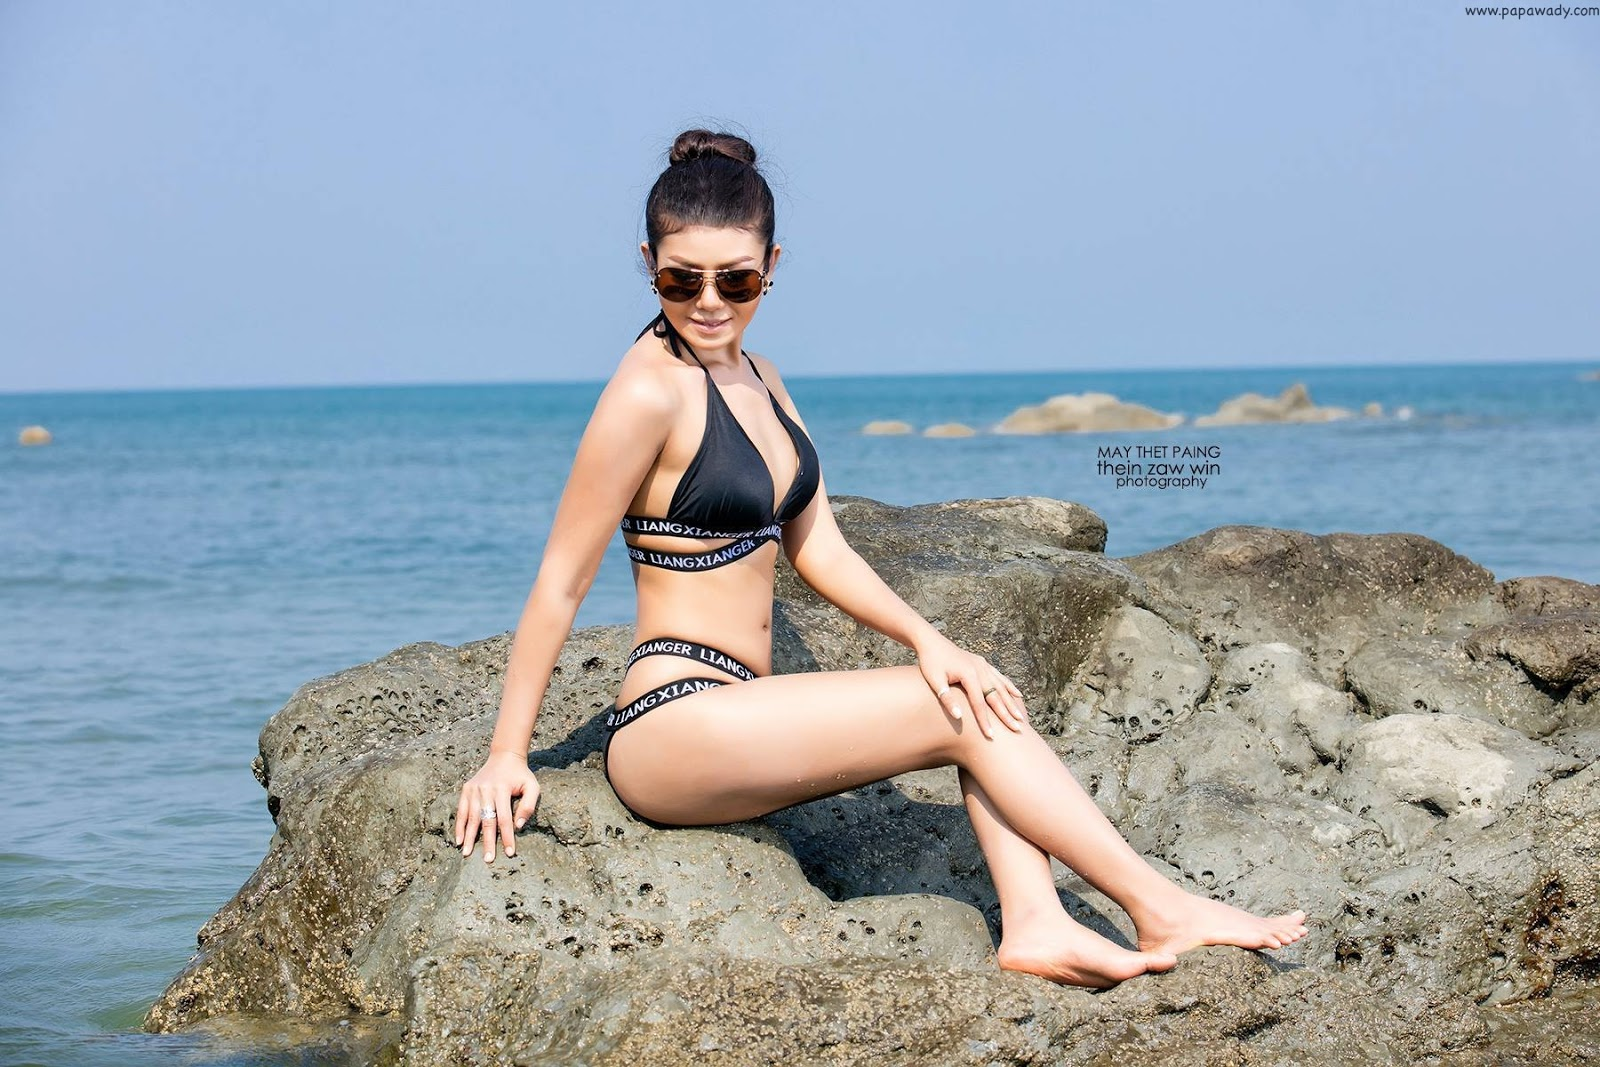 May Thet Paing Calendar Photoshoot At The Beach